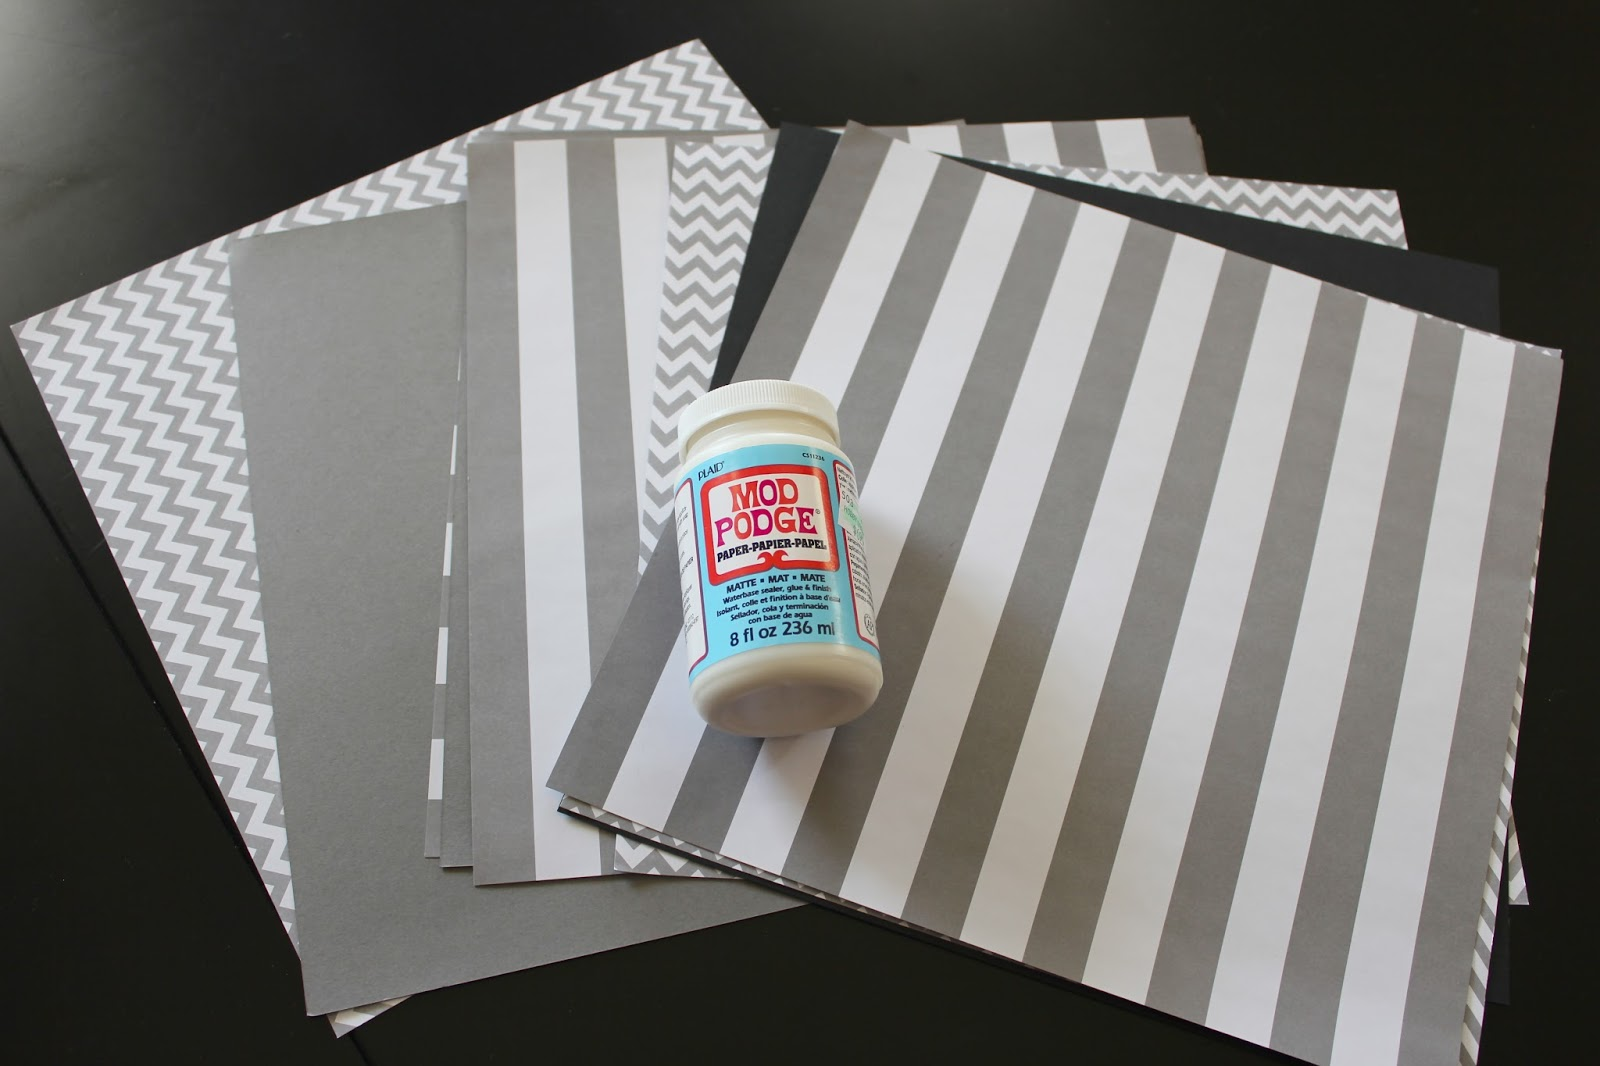 Scrapbook paper dollhouse wallpaper - I Also Picked Up Some Craft Fur To Use As Carpeting And A Battery Operated Locker Chandelier That Really Light Up